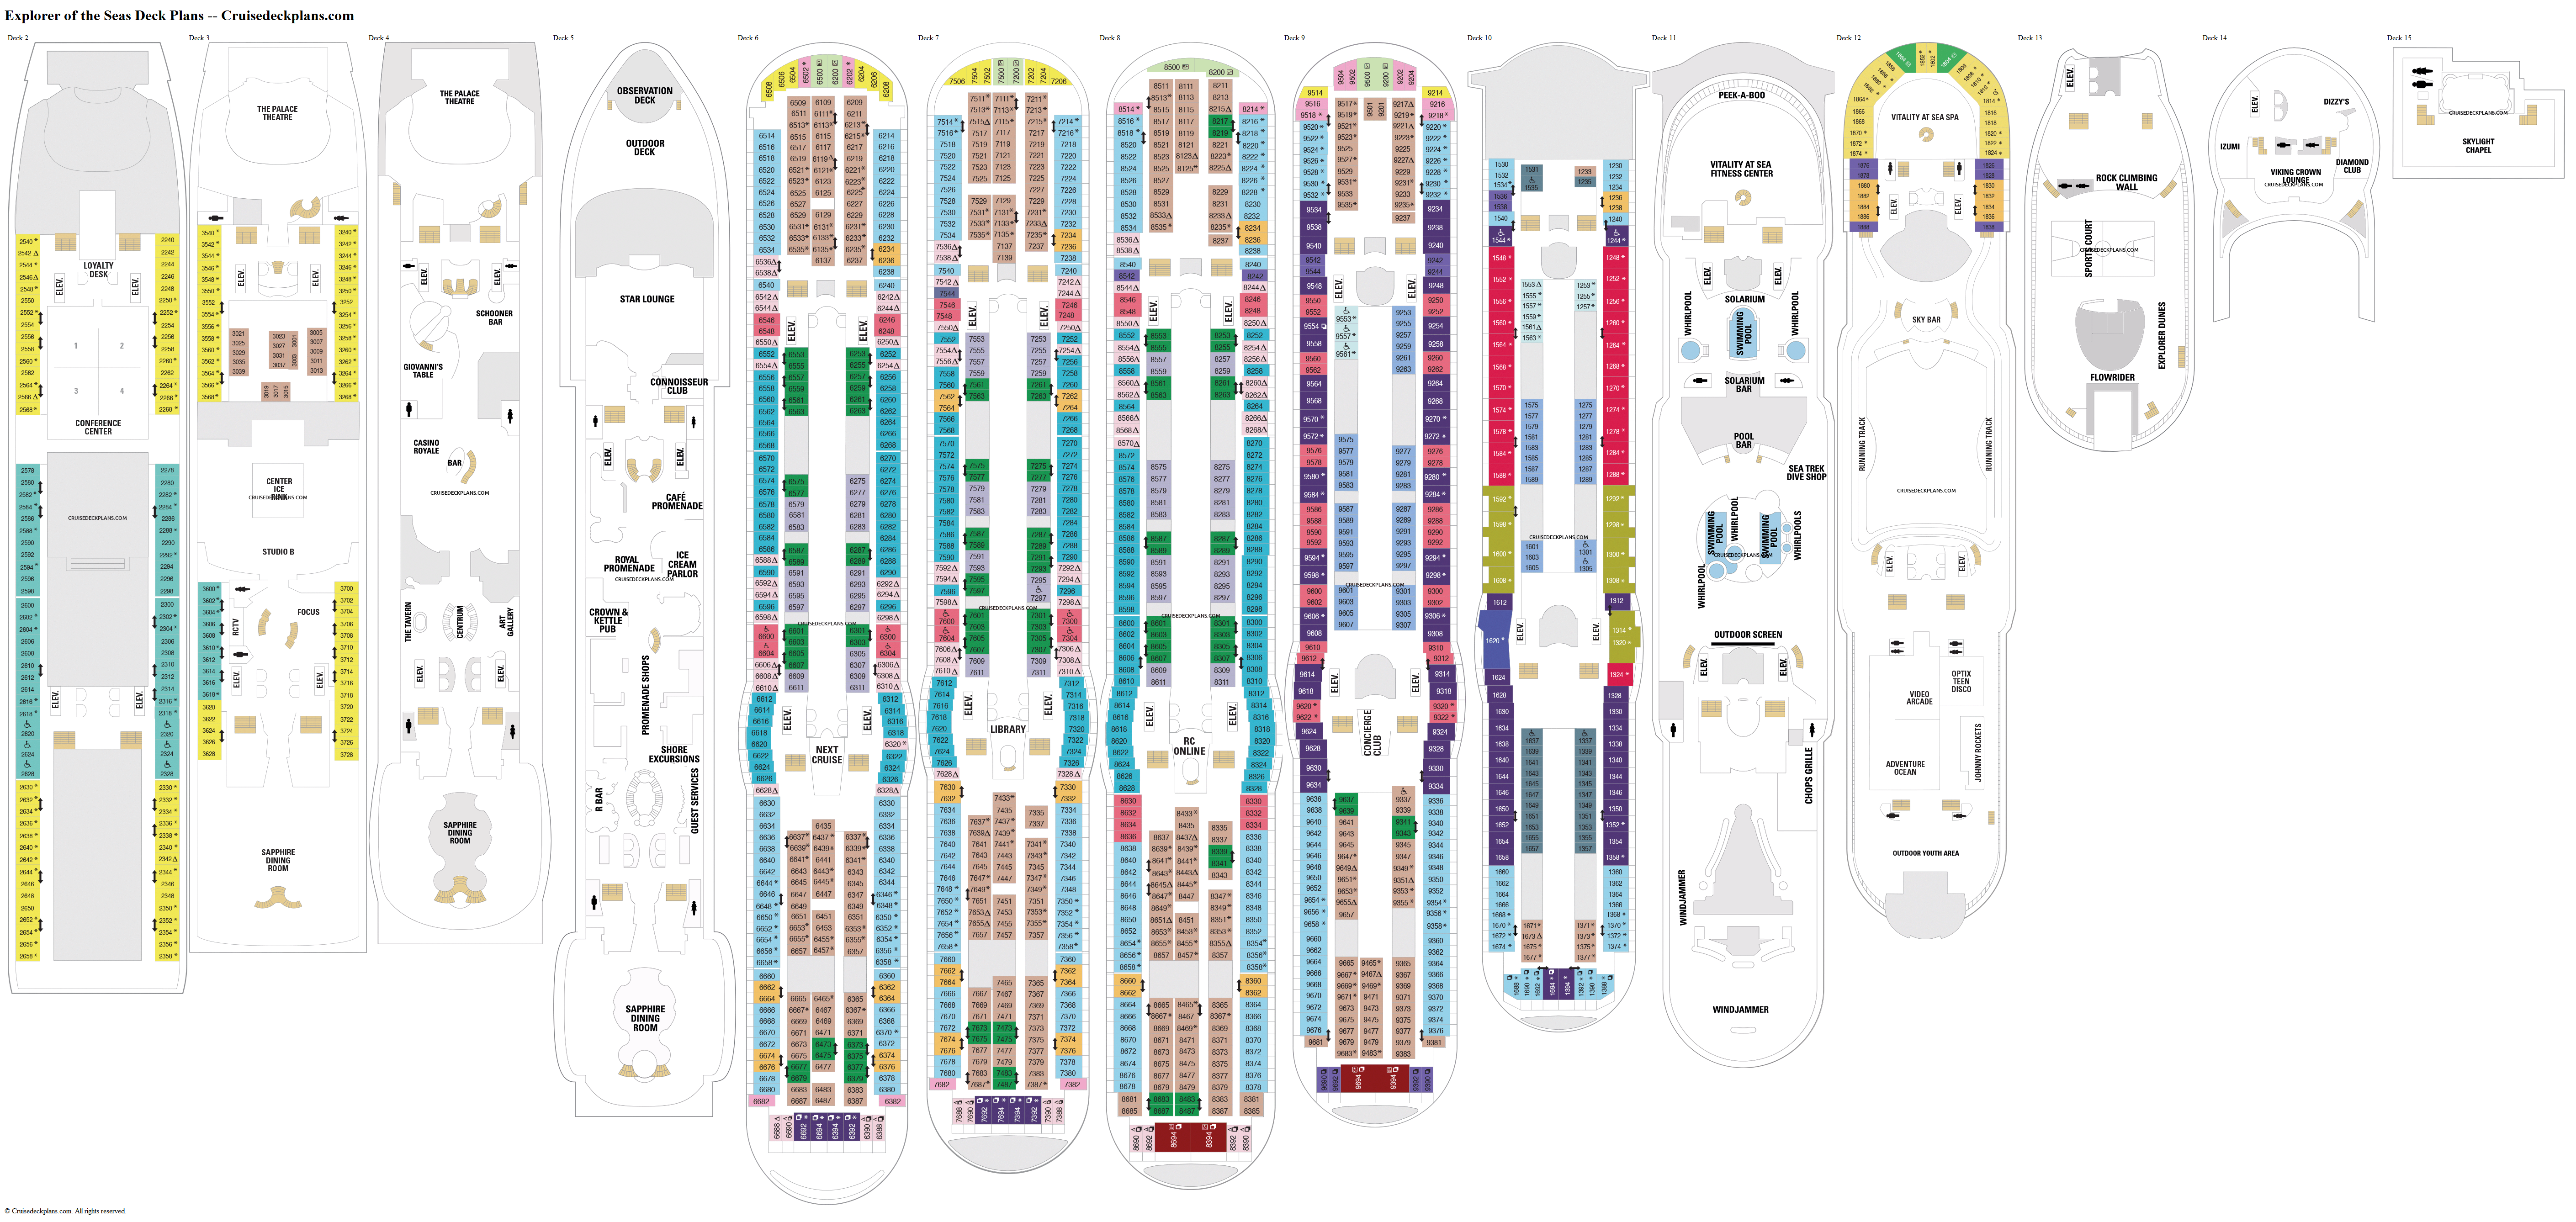 Explorer of the Seas deck plans image